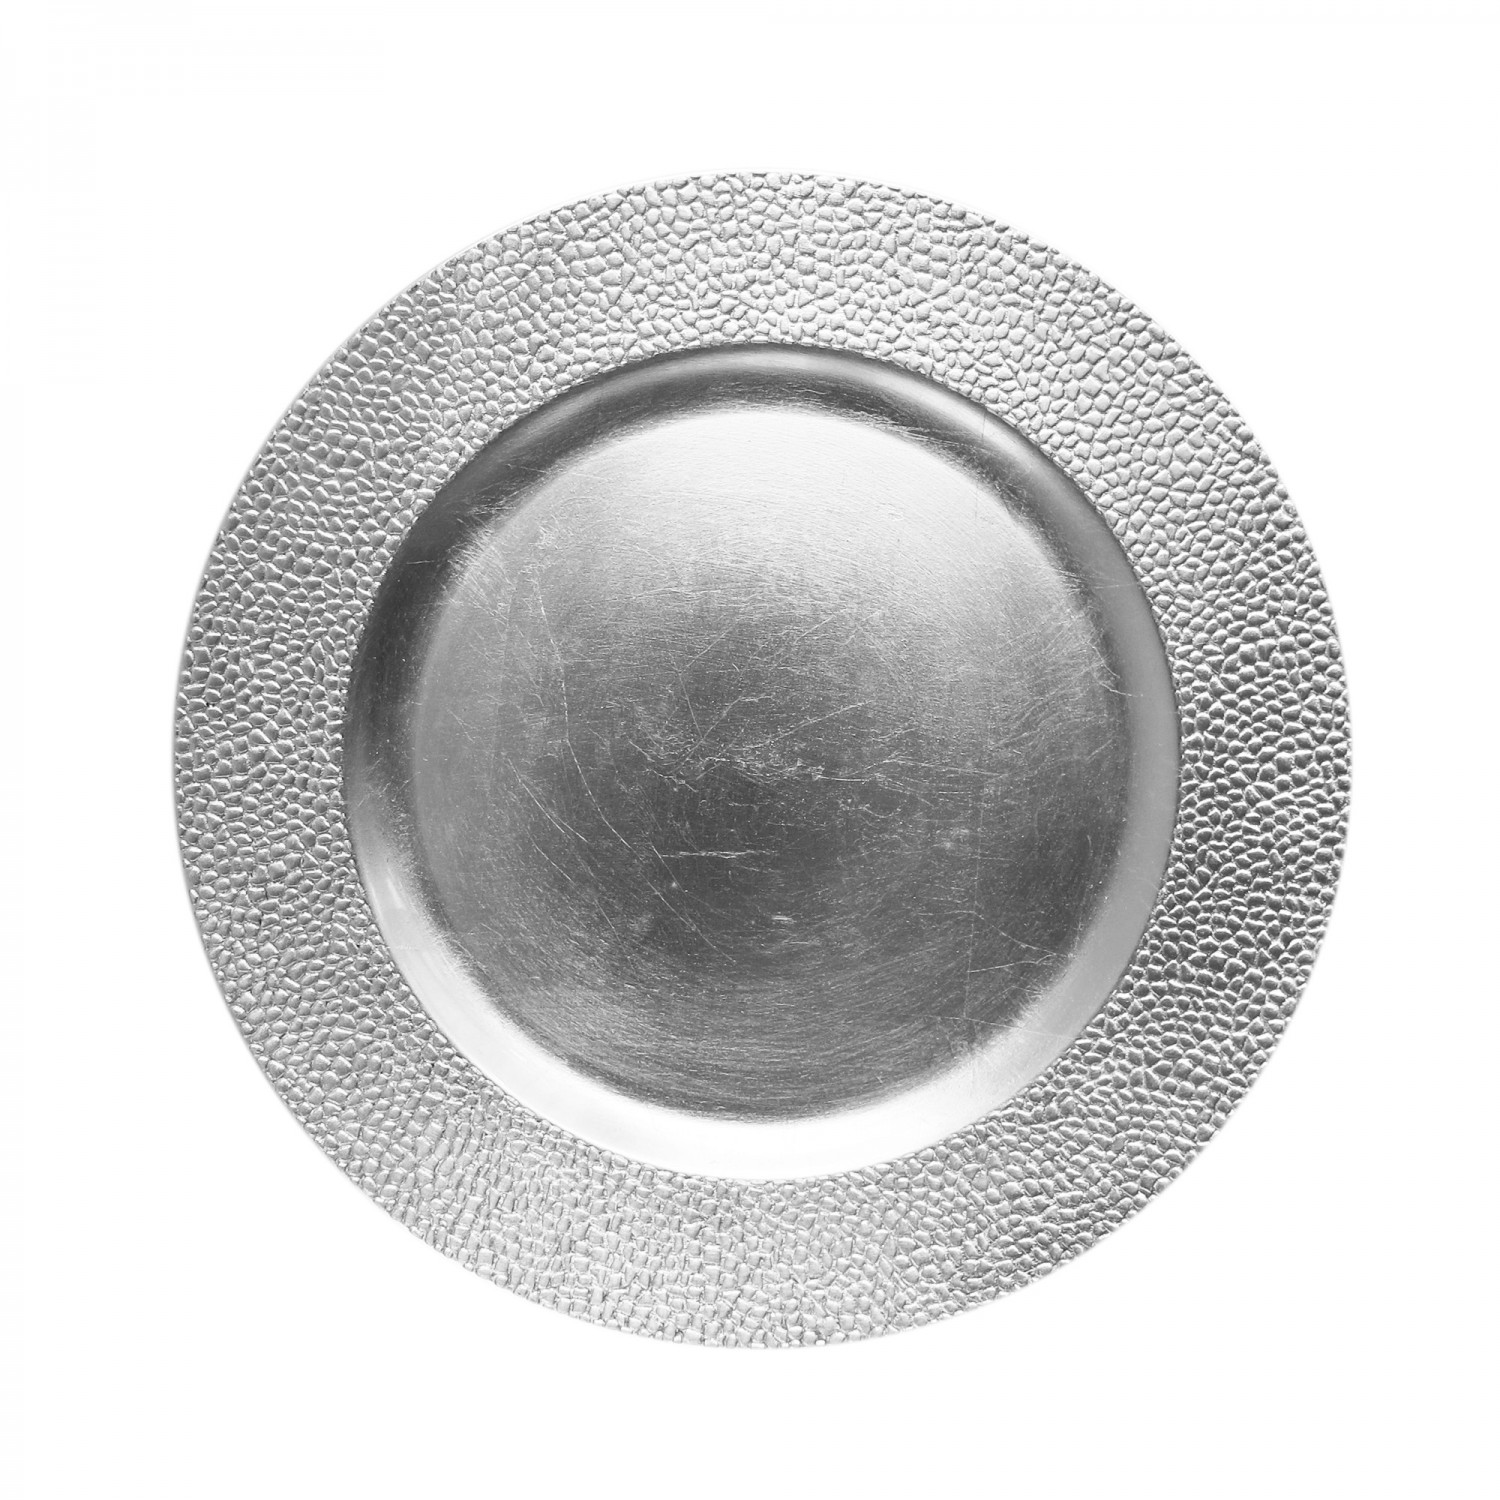 The Jay Companies 1182761 Round Silver Pebbled Charger Plate 13""